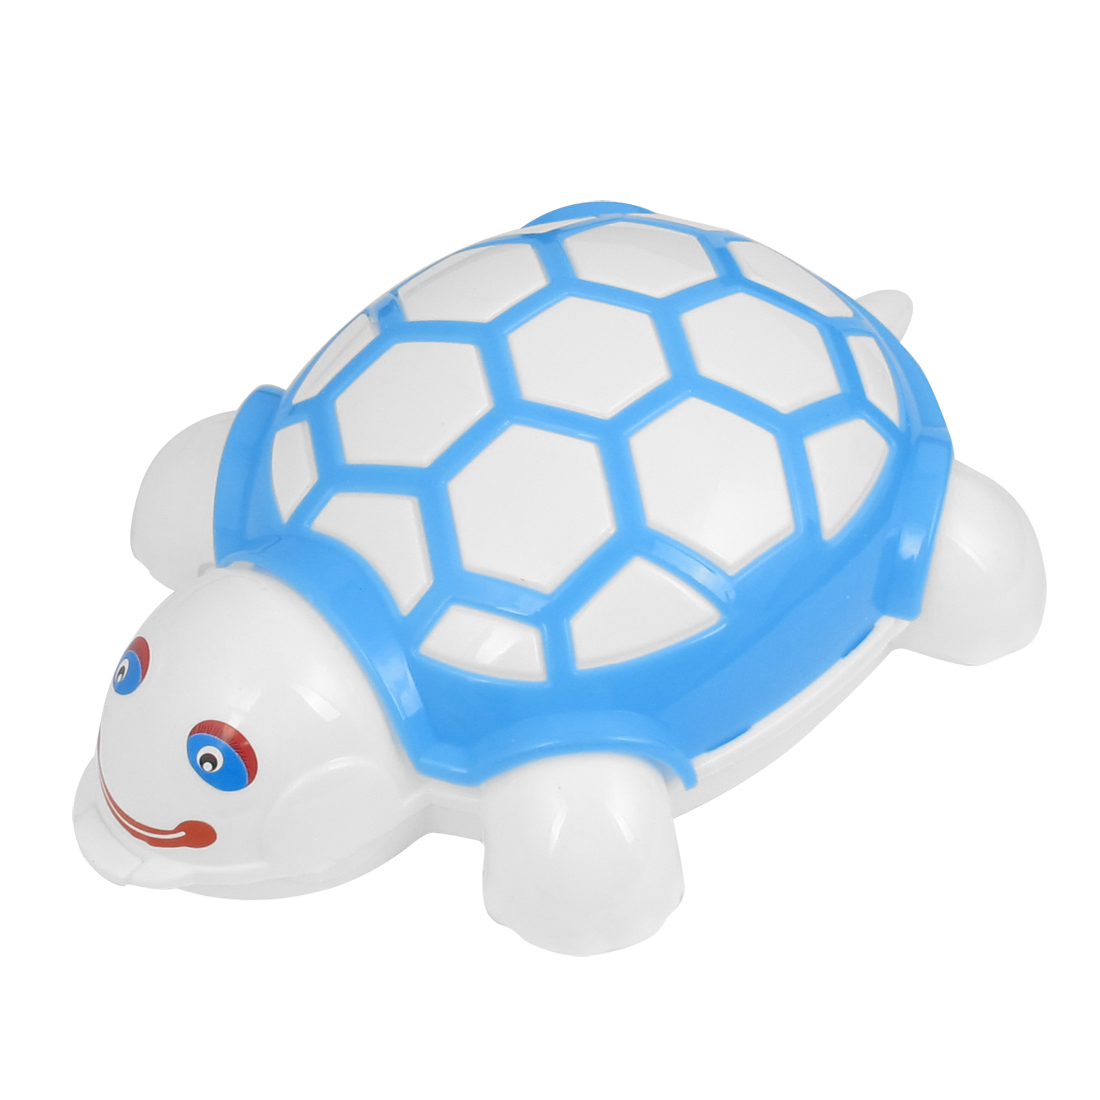 Blue Plastic Tortoise Design Push Double Rollers Carpet Cleaning Brush Cleaner Tool